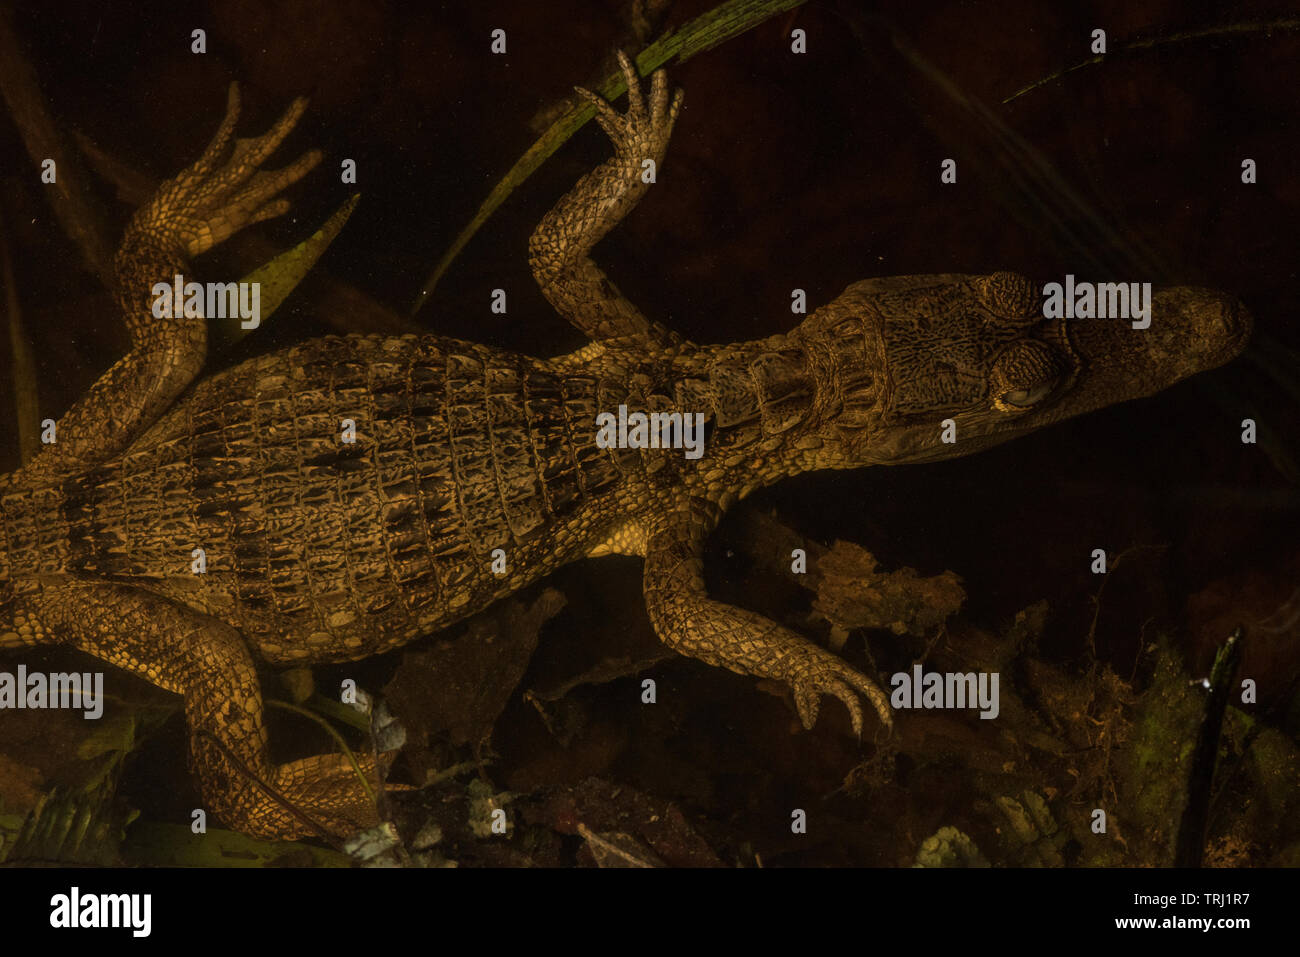 A young spectacled caiman (Caiman crocodilus) at the waters edge waiting for prey to venture close. From Yasuni national park, Ecuador. Stock Photo